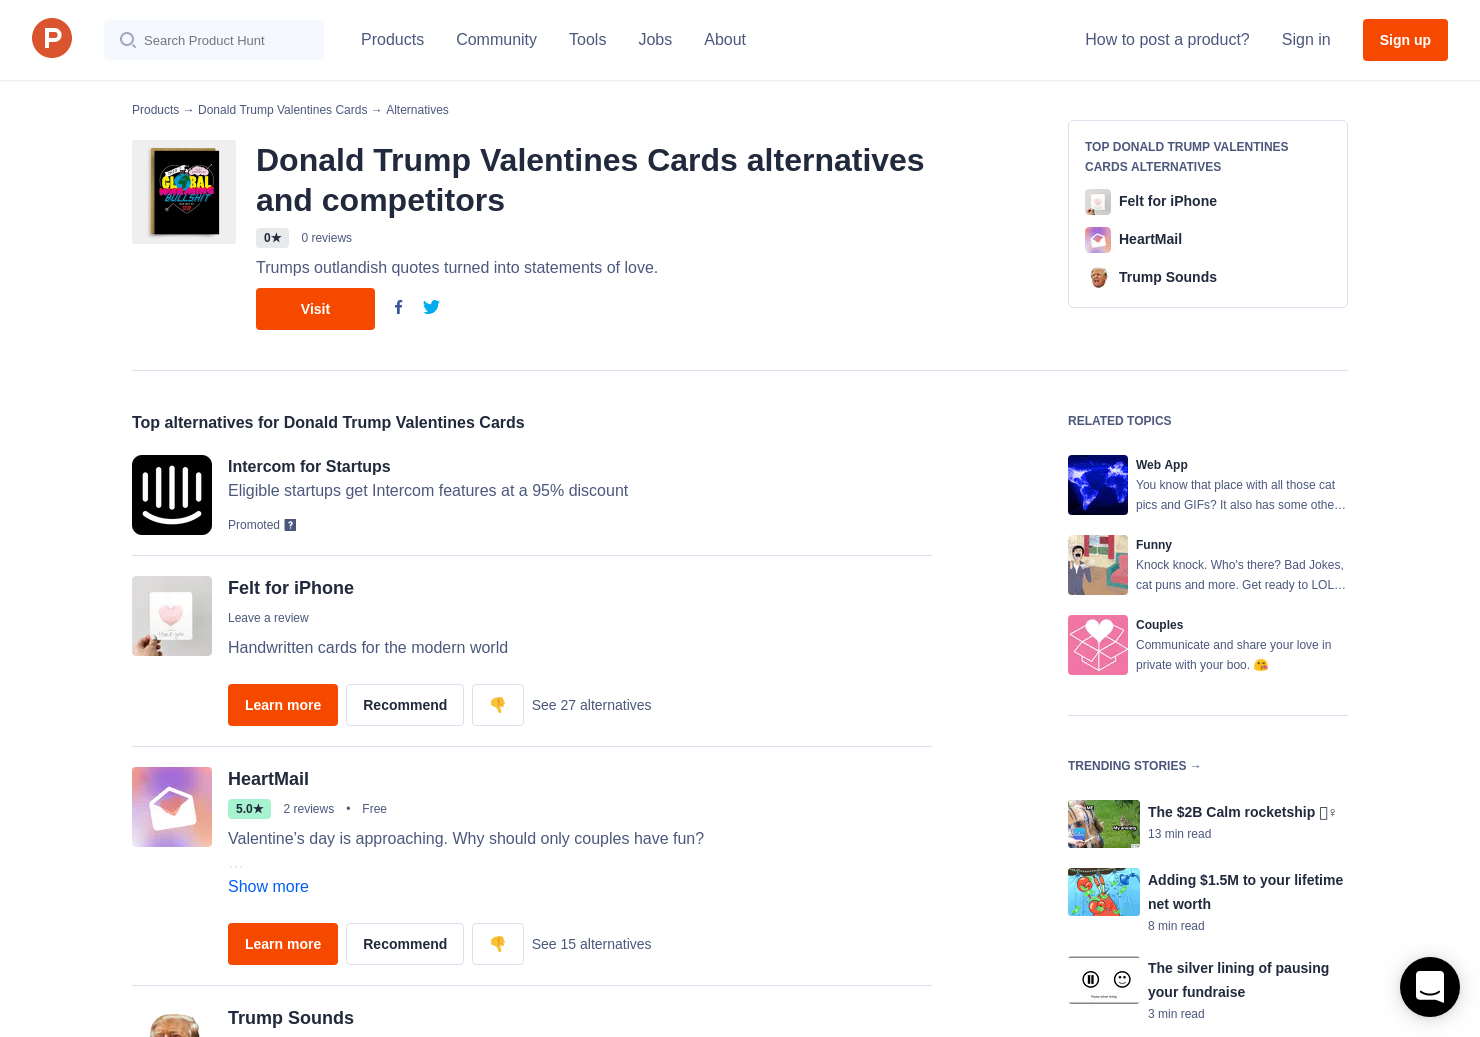 4 Alternatives To Donald Trump Valentines Cards Product Hunt